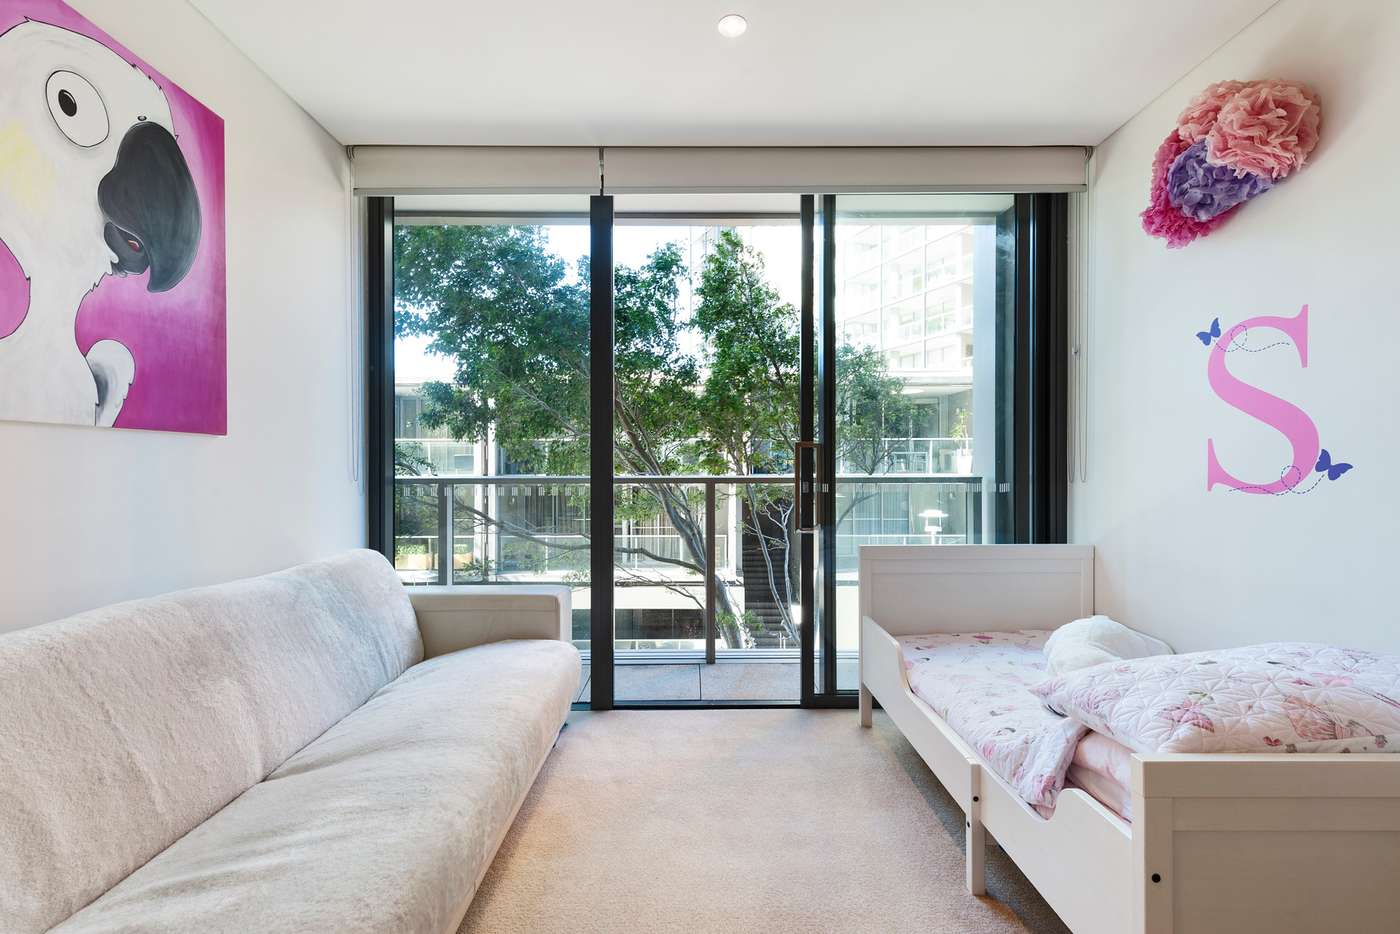 Sixth view of Homely apartment listing, 2C/5 Tambua Street, Pyrmont NSW 2009